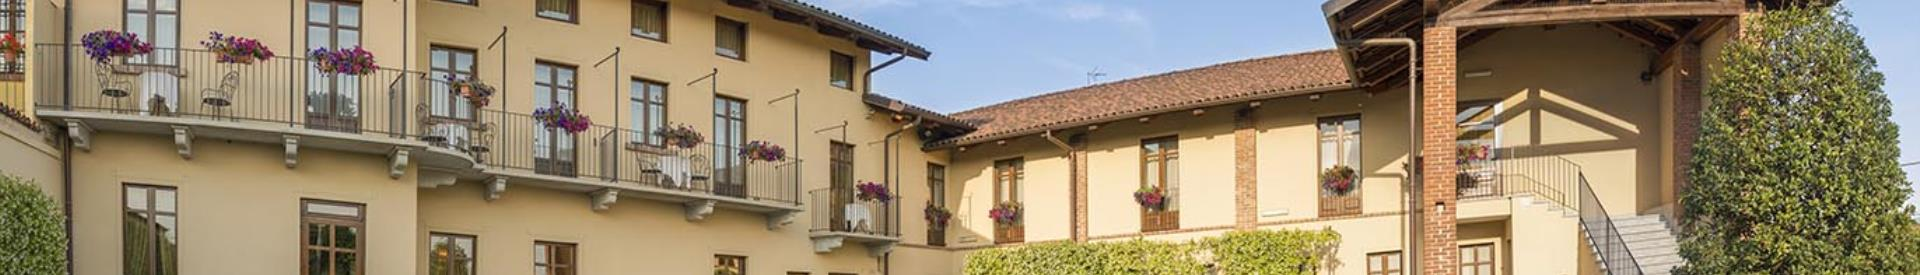 Looking for hospitality and top services for your stay in San Francesco al Campo? Choose Best Western Plus Hotel Le Rondini